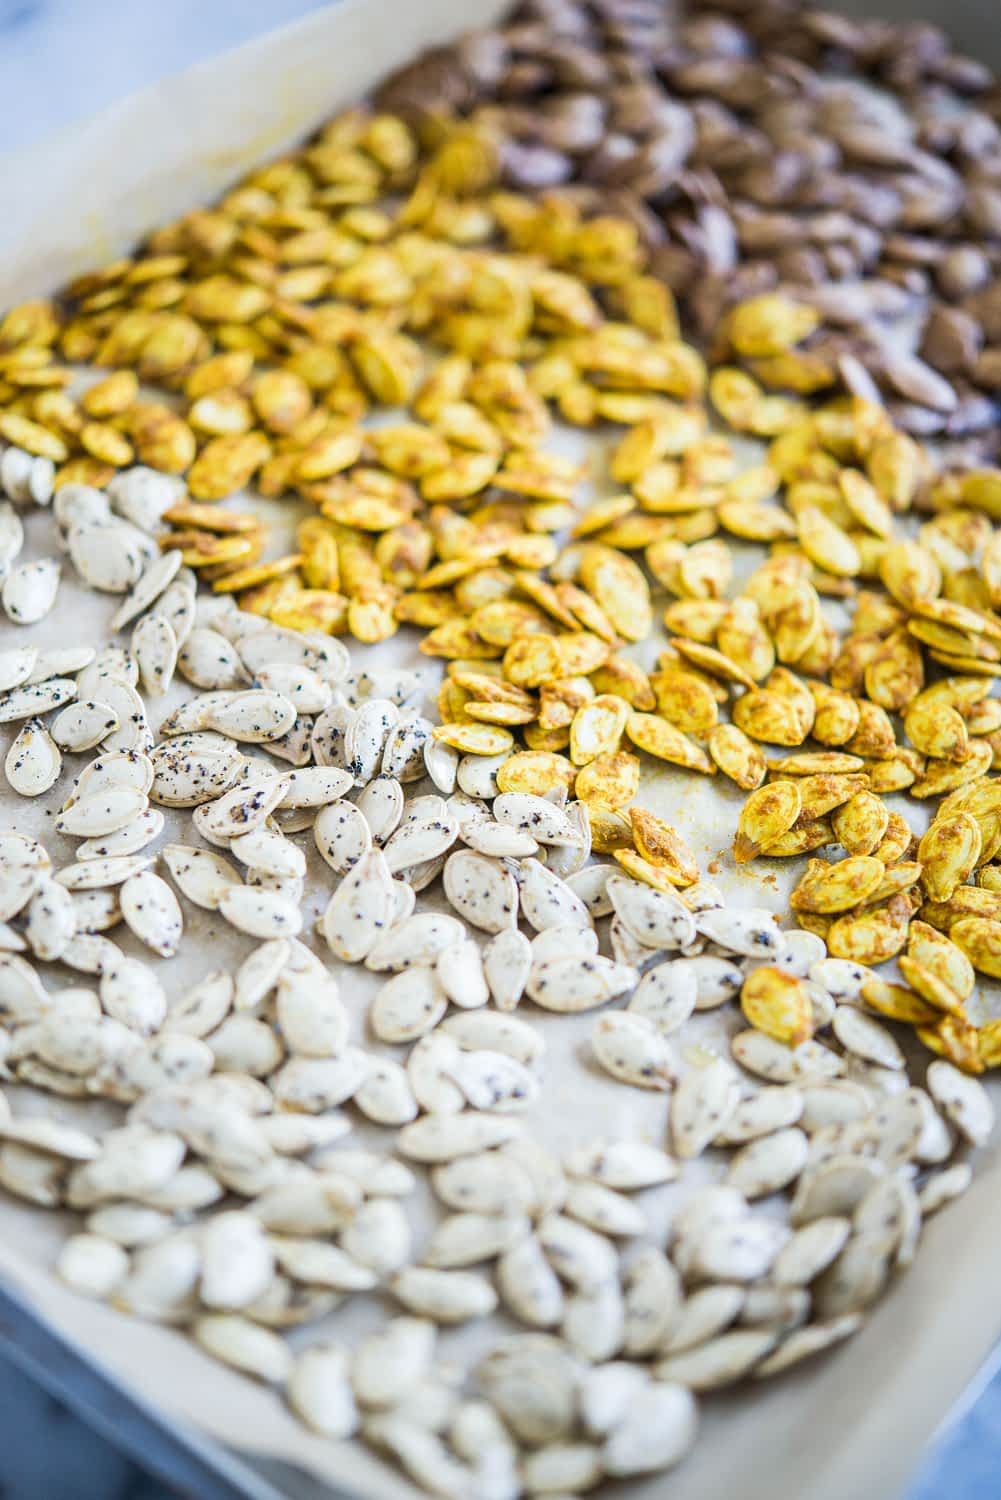 3 flavors of homemade pumpkin seeds, one white, one bright yellow, and one dark brown, on a sheet of parchment paper